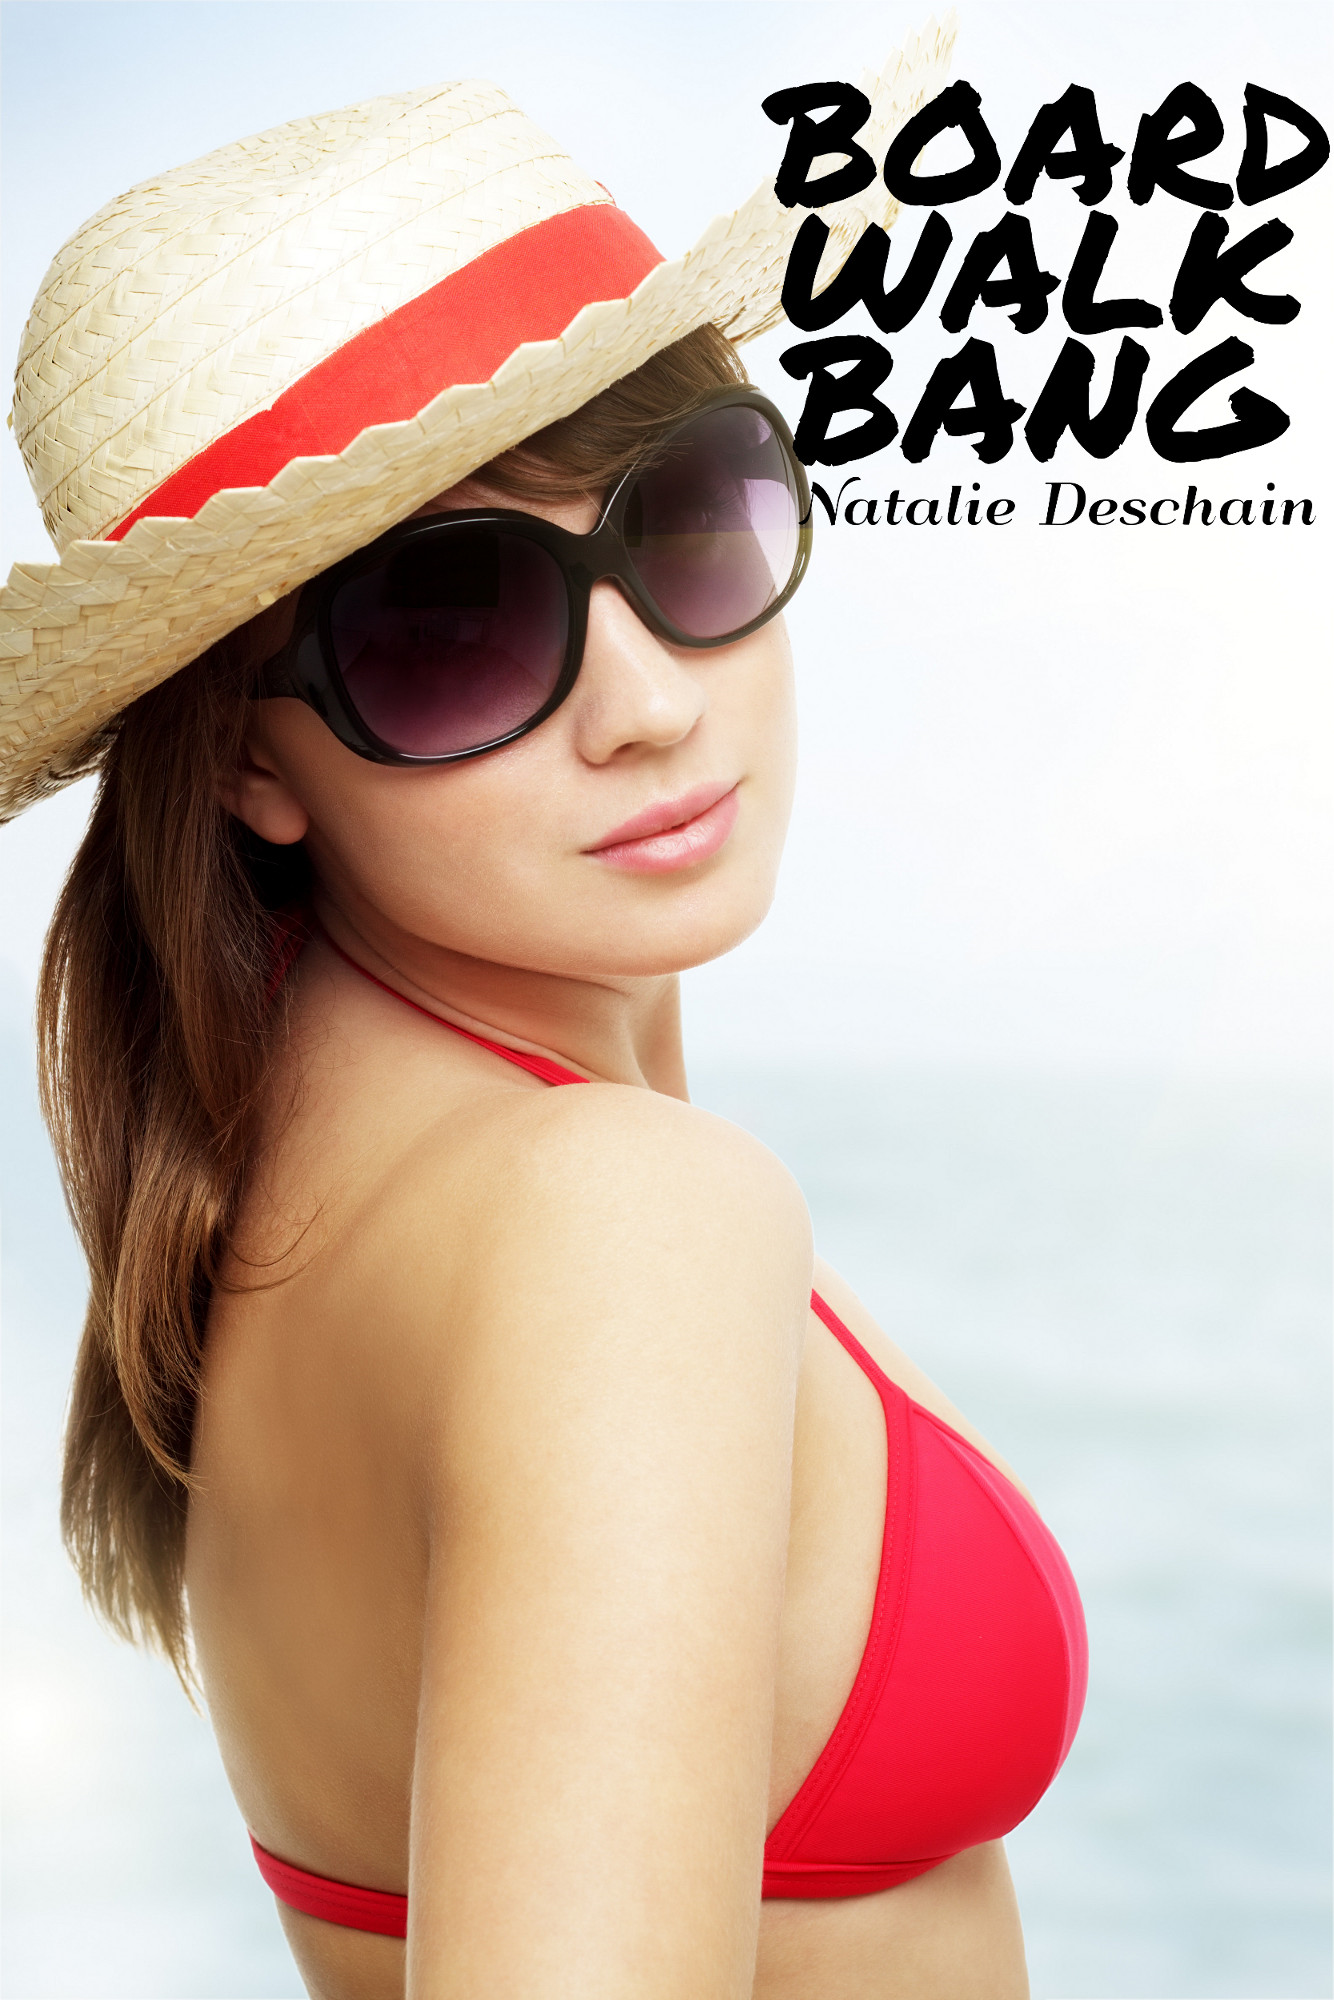 Boardwalk Bang (Gangbang, Older Woman Younger Men, Dominant Female, Cuckolding)